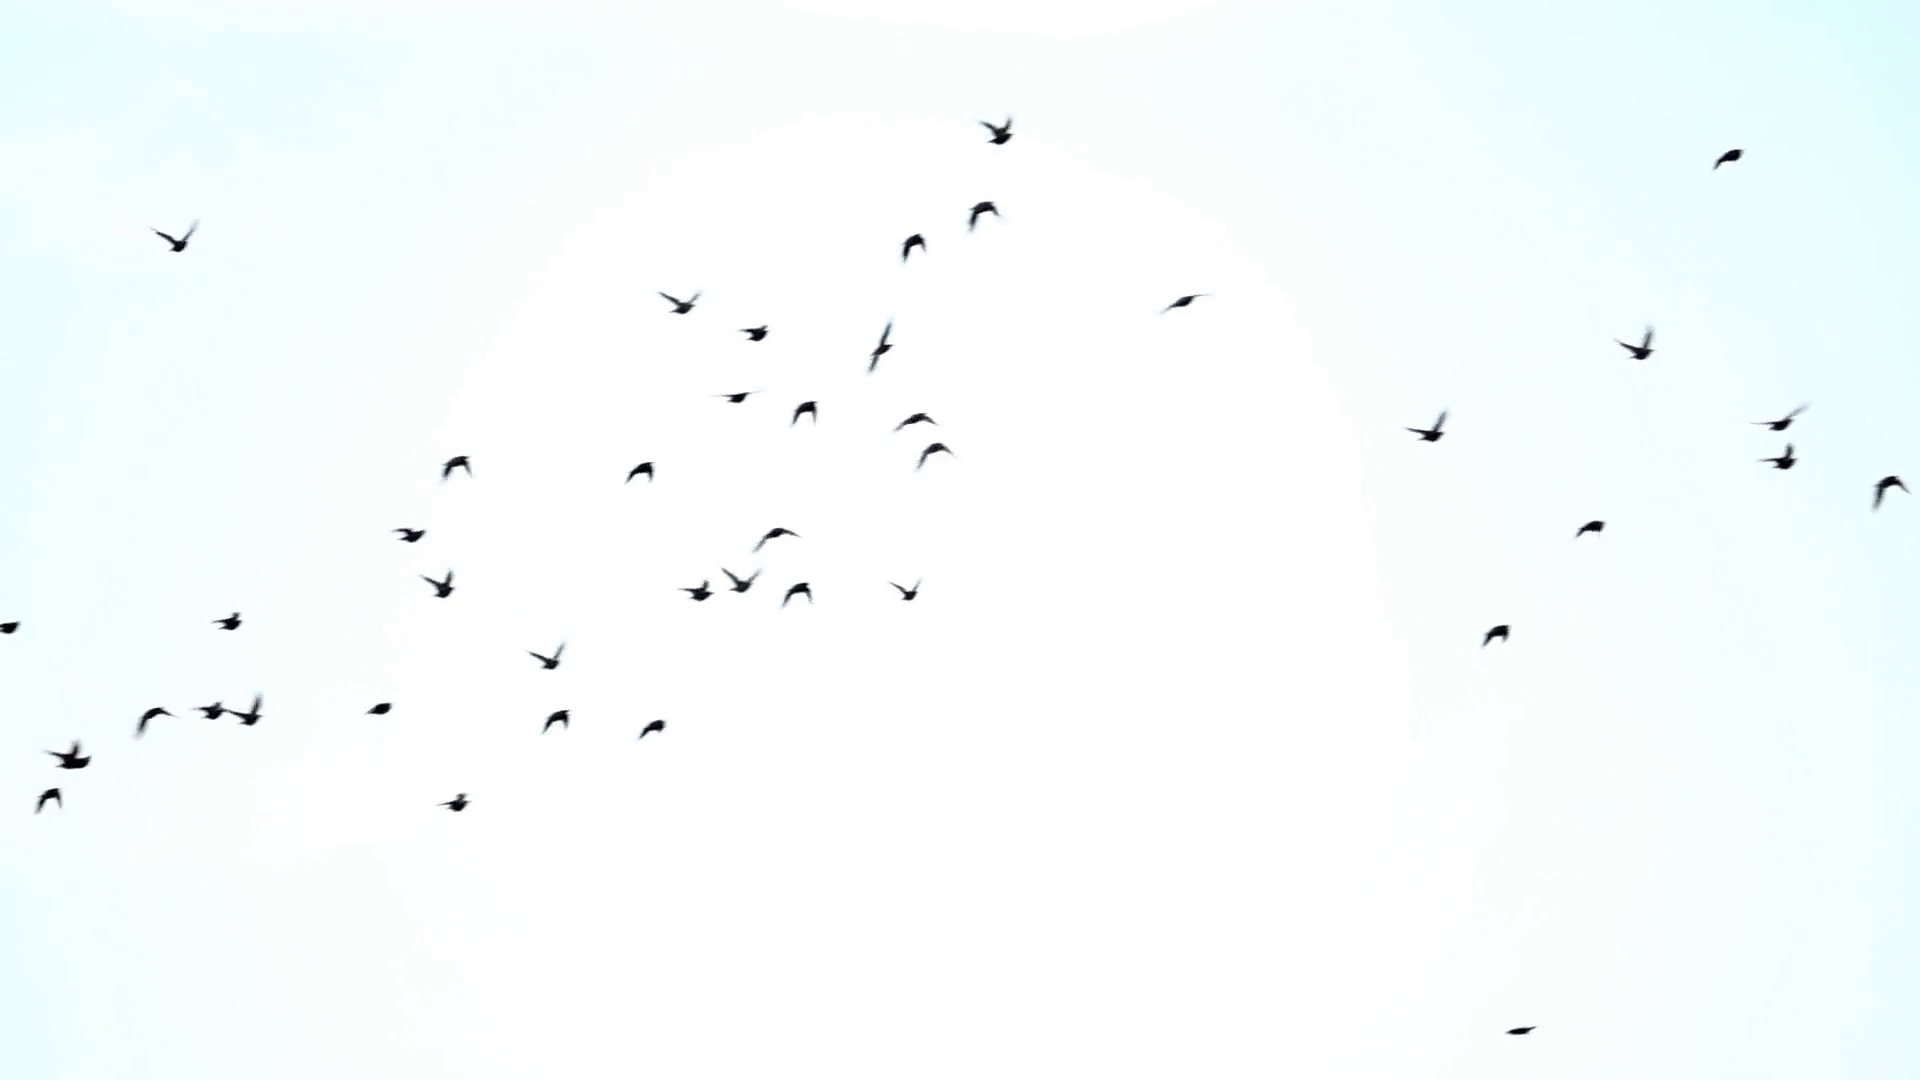 Sky Bird Png - Birds flying in the sky png 4 » PNG Image